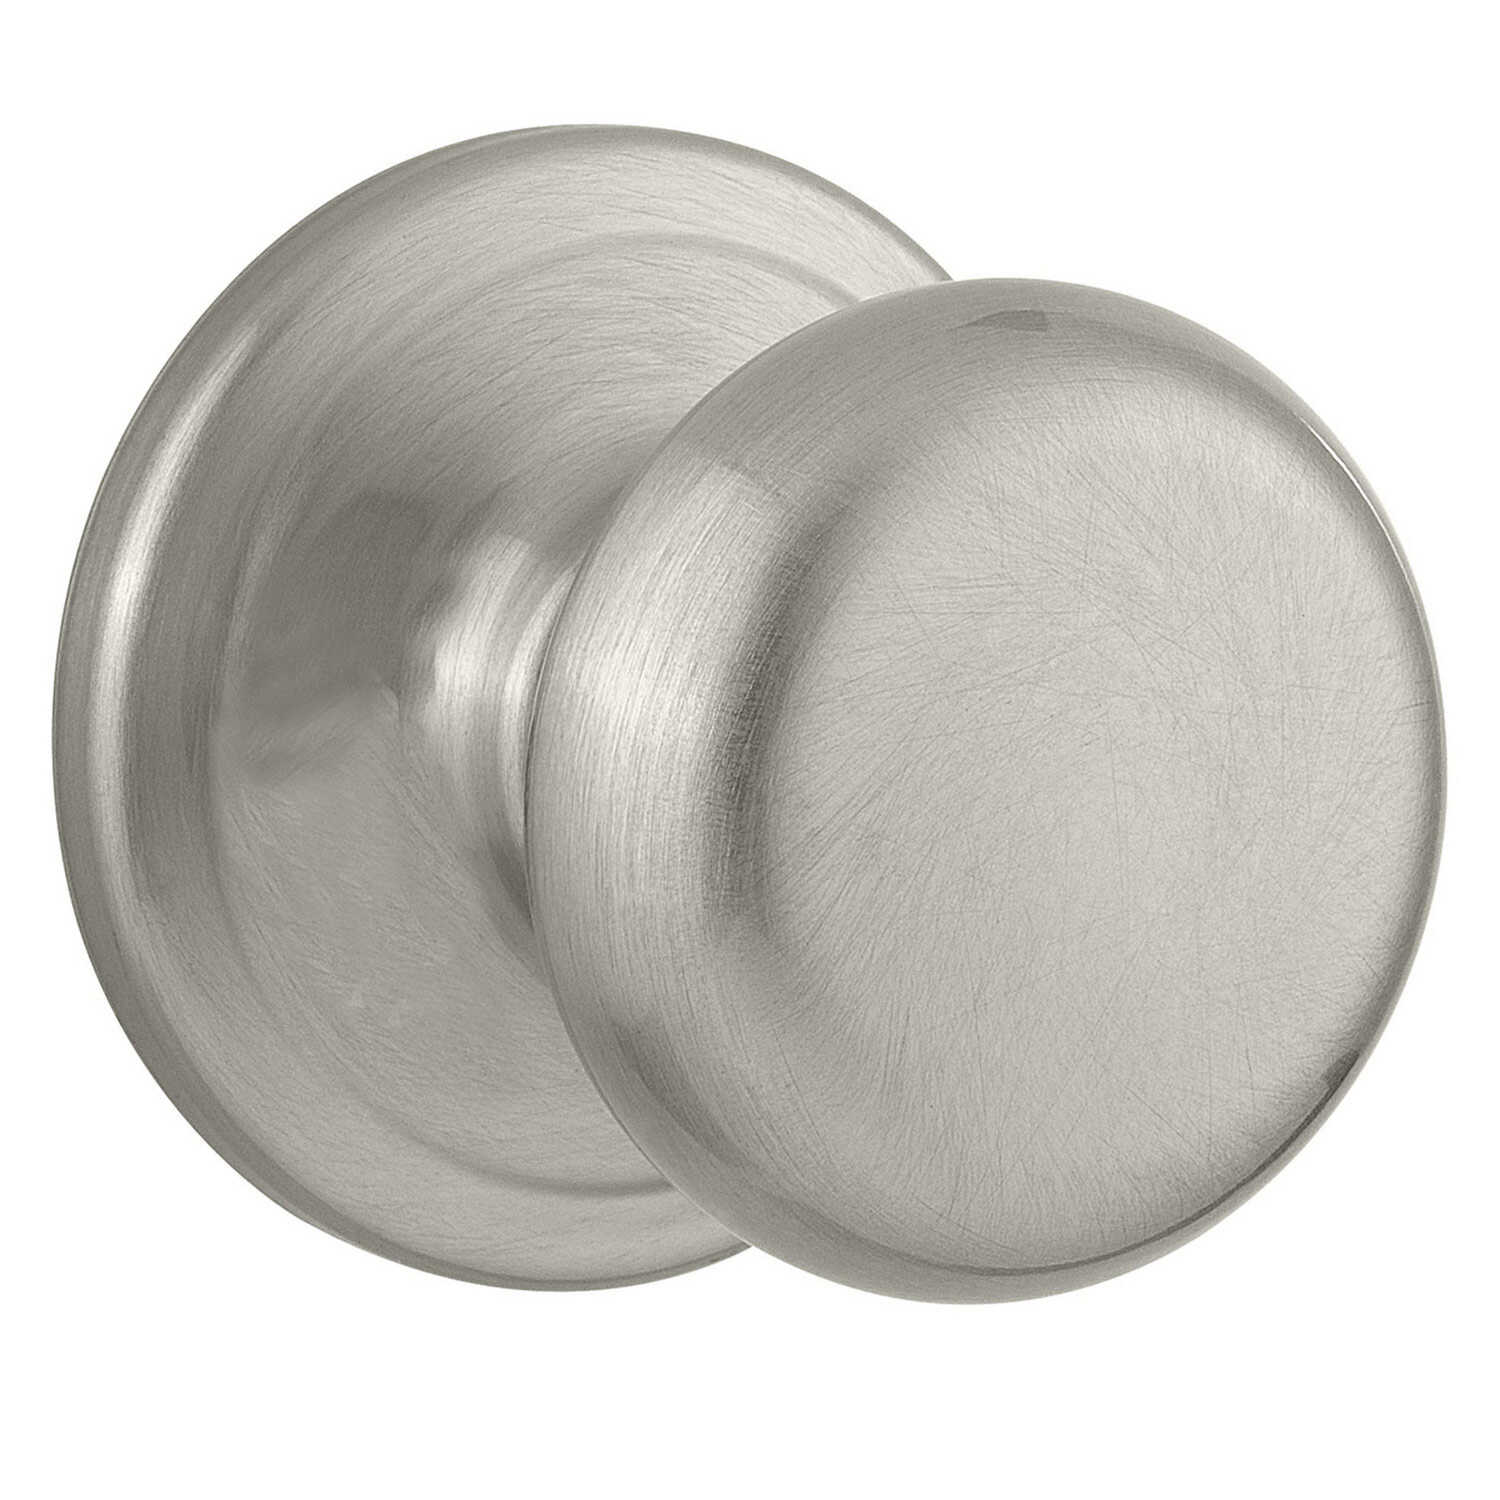 Kwikset  Juno  Satin Nickel  Steel  Passage Lockset  ANSI/BHMA Grade 2  1-3/4 in.